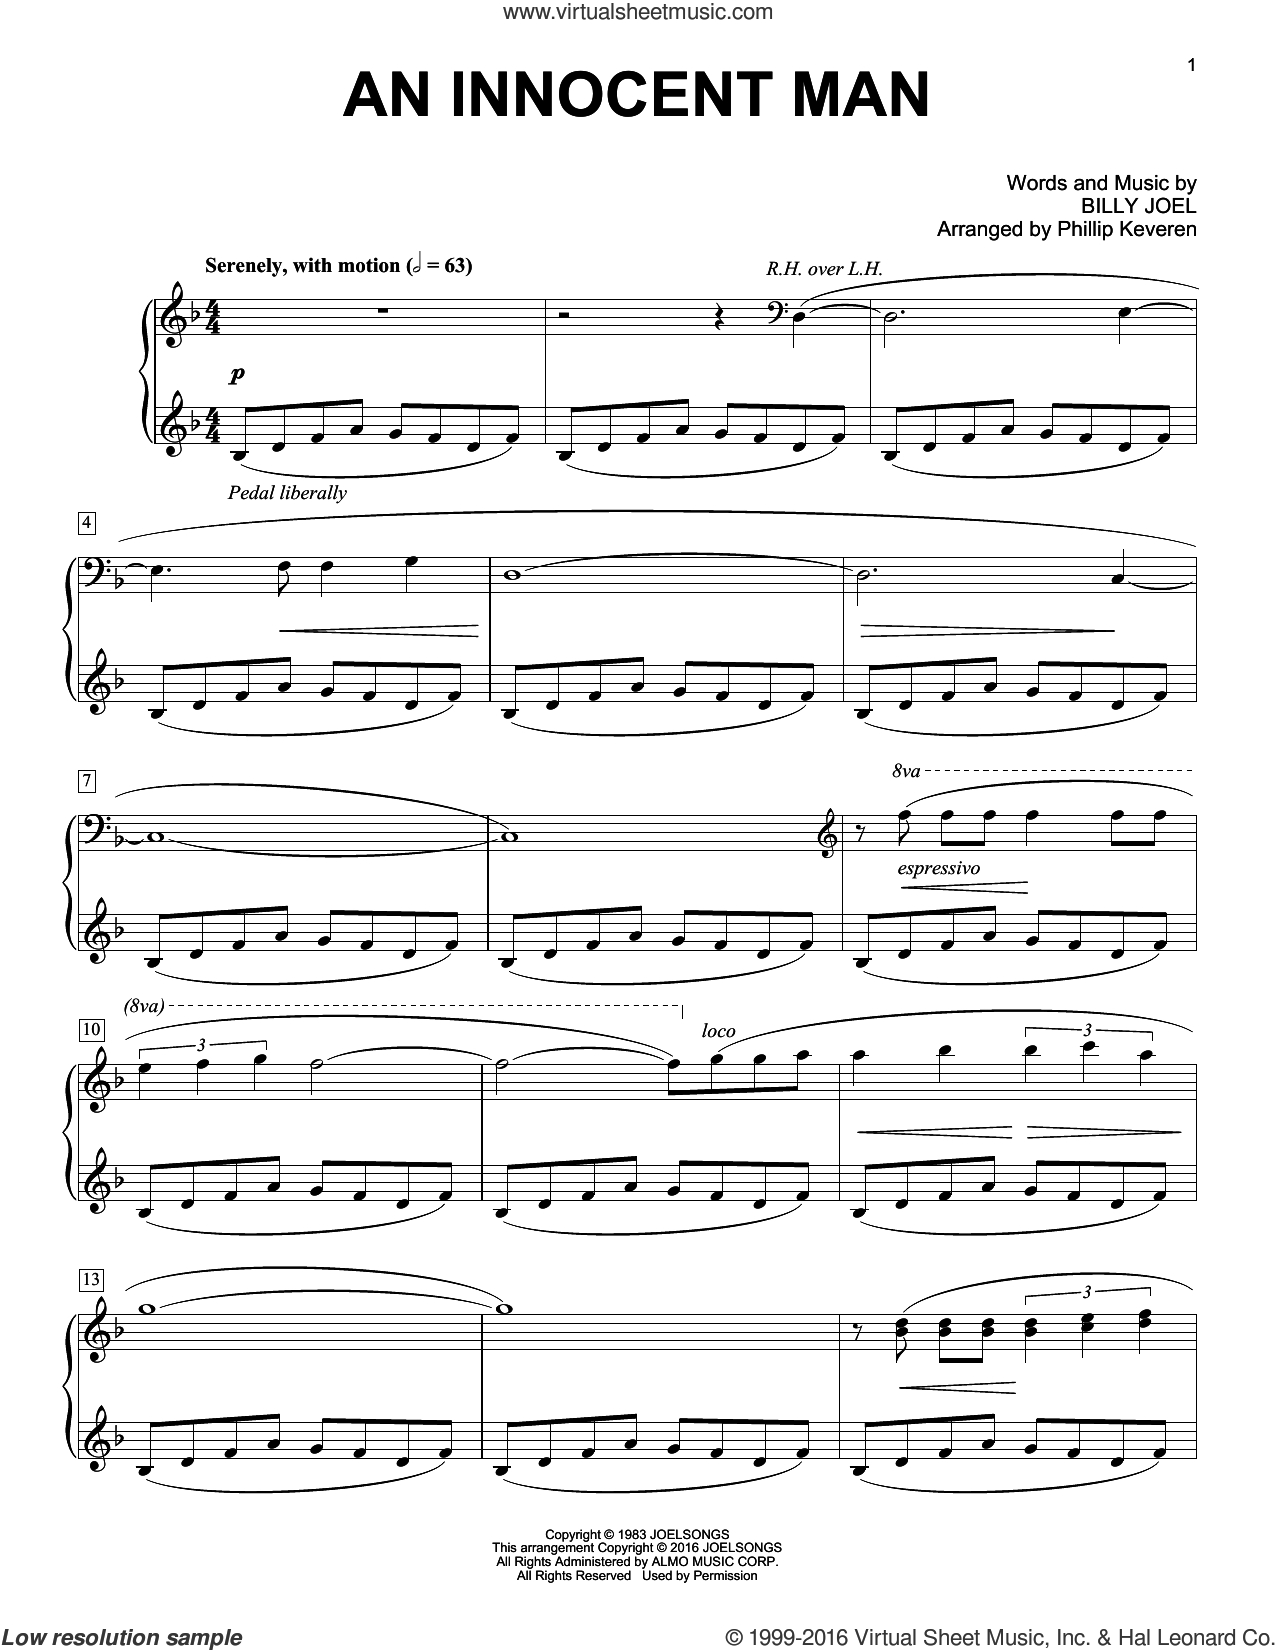 An Innocent Man sheet music for piano solo by Phillip Keveren